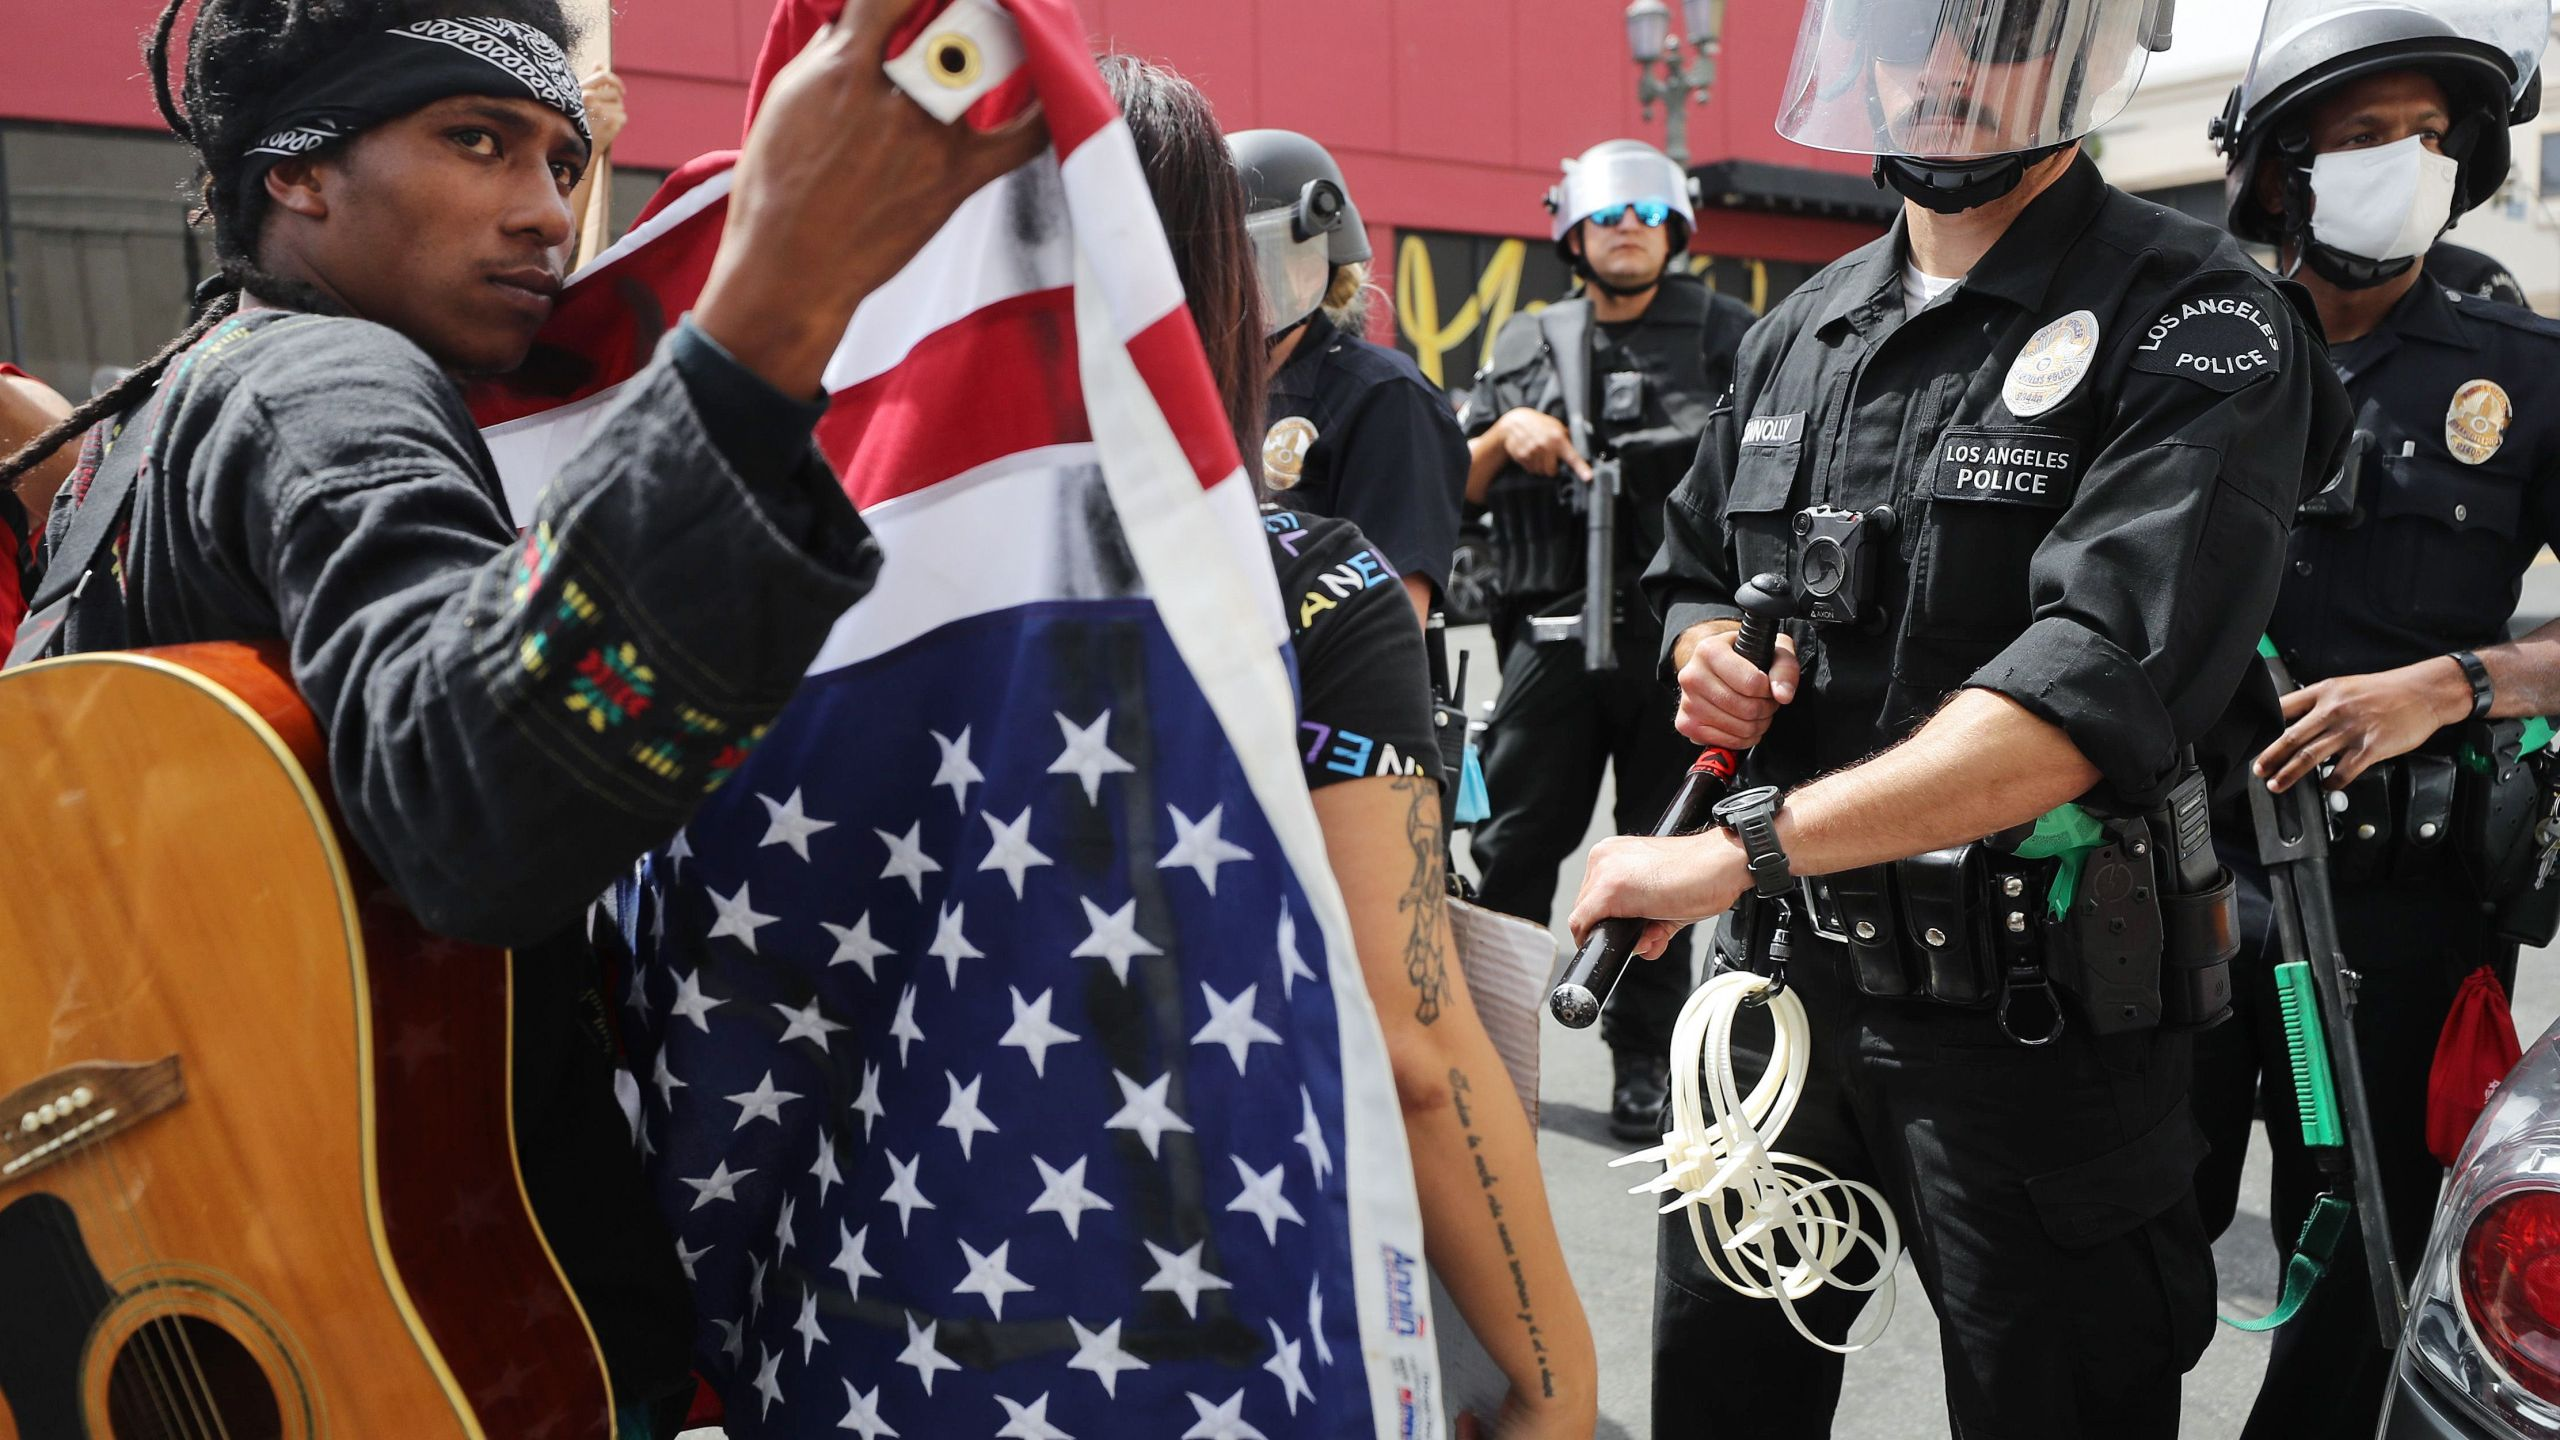 A protester holds an American flag in front of police during a demonstration in Hollywood on June 2, 2020. (Mario Tama/Getty Images)